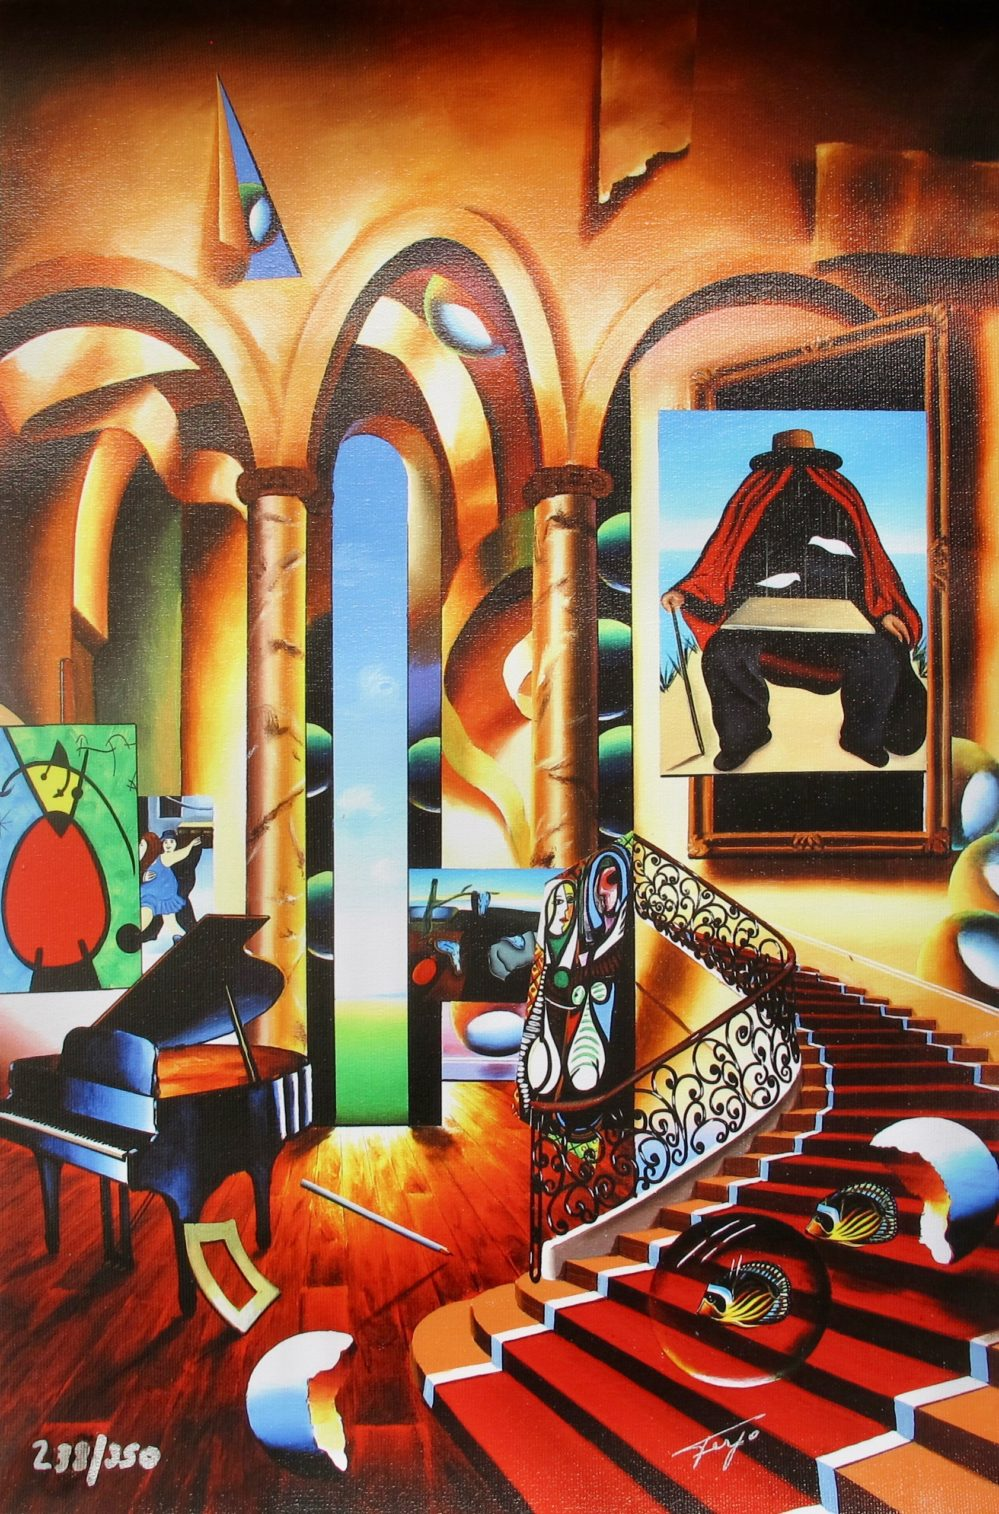 FERJO CONCLAVE OF THE MASTERS Hand signed Limited Edition Giclee on Canvas